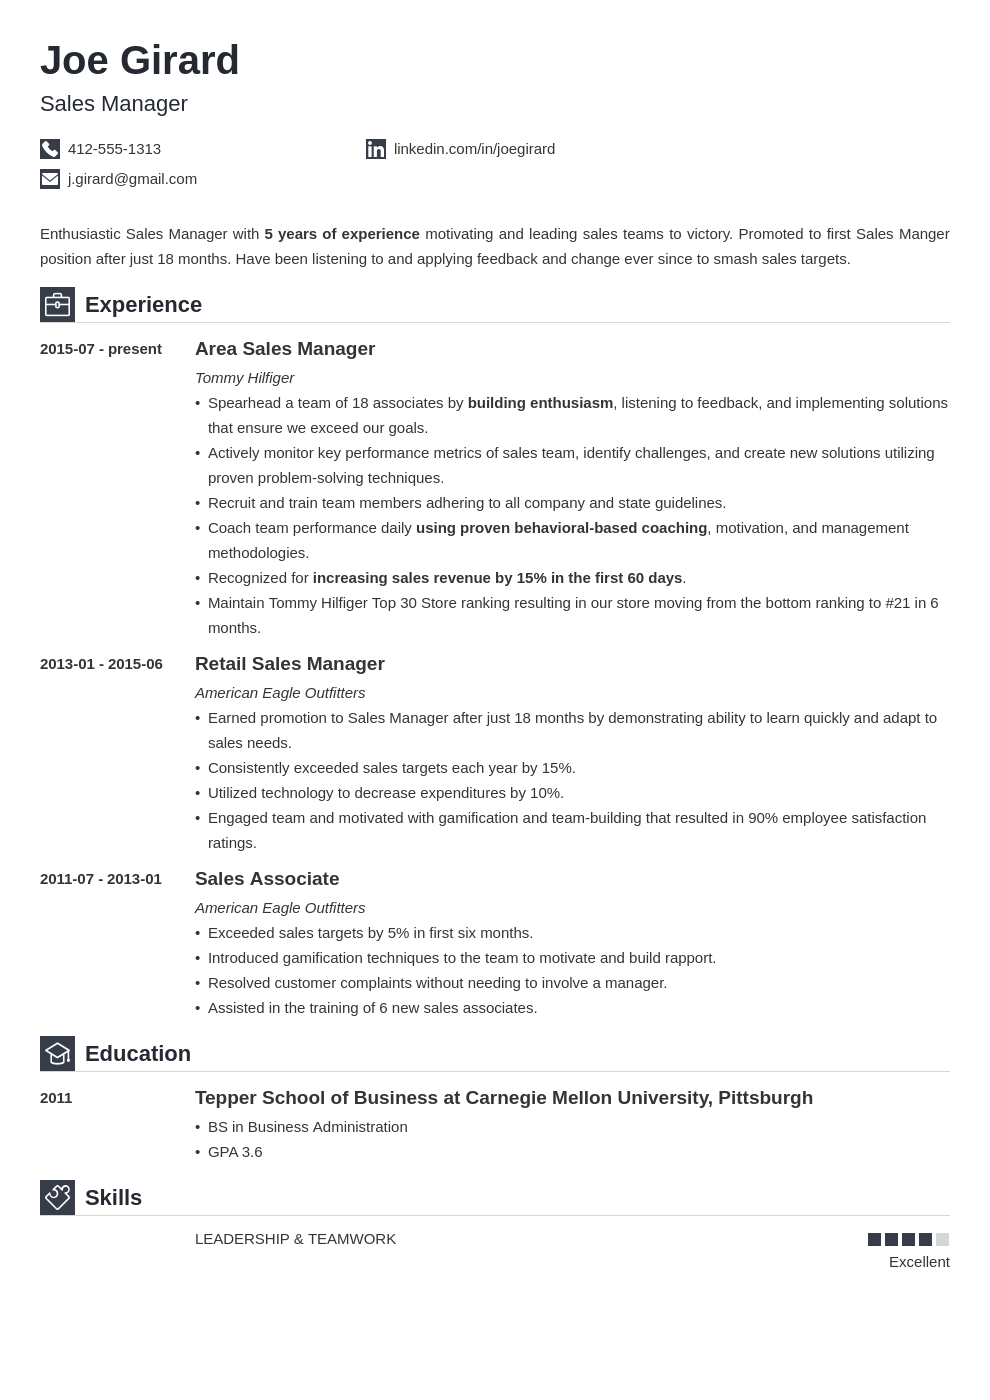 Sales Manager Resume Example Template Iconic Manager Resume Resume Examples Job Resume Examples